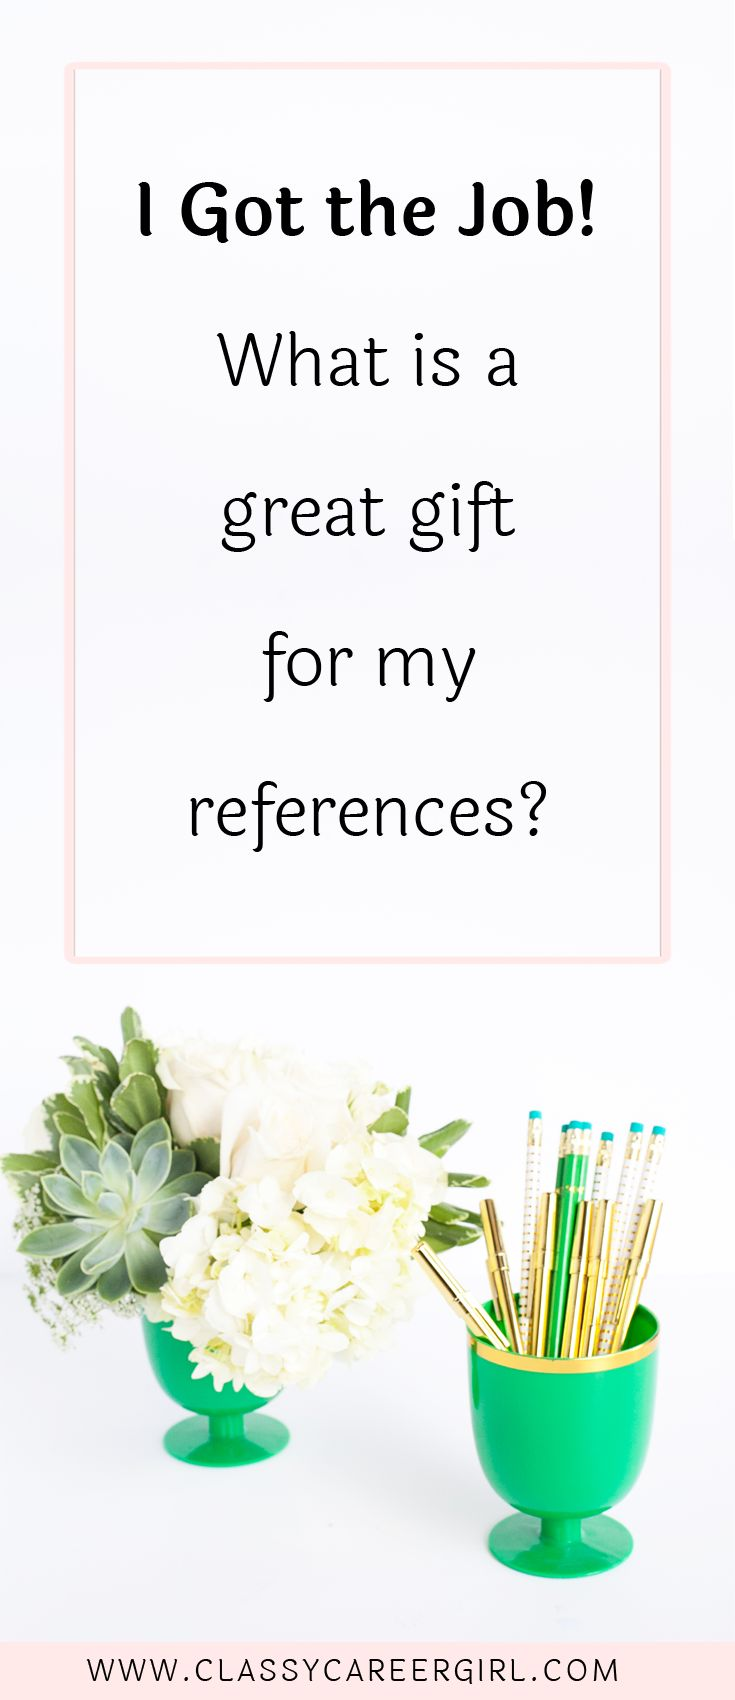 580 best gift ideas images on pinterest gifts friend gifts and diy what is a great gift for my references negle Images